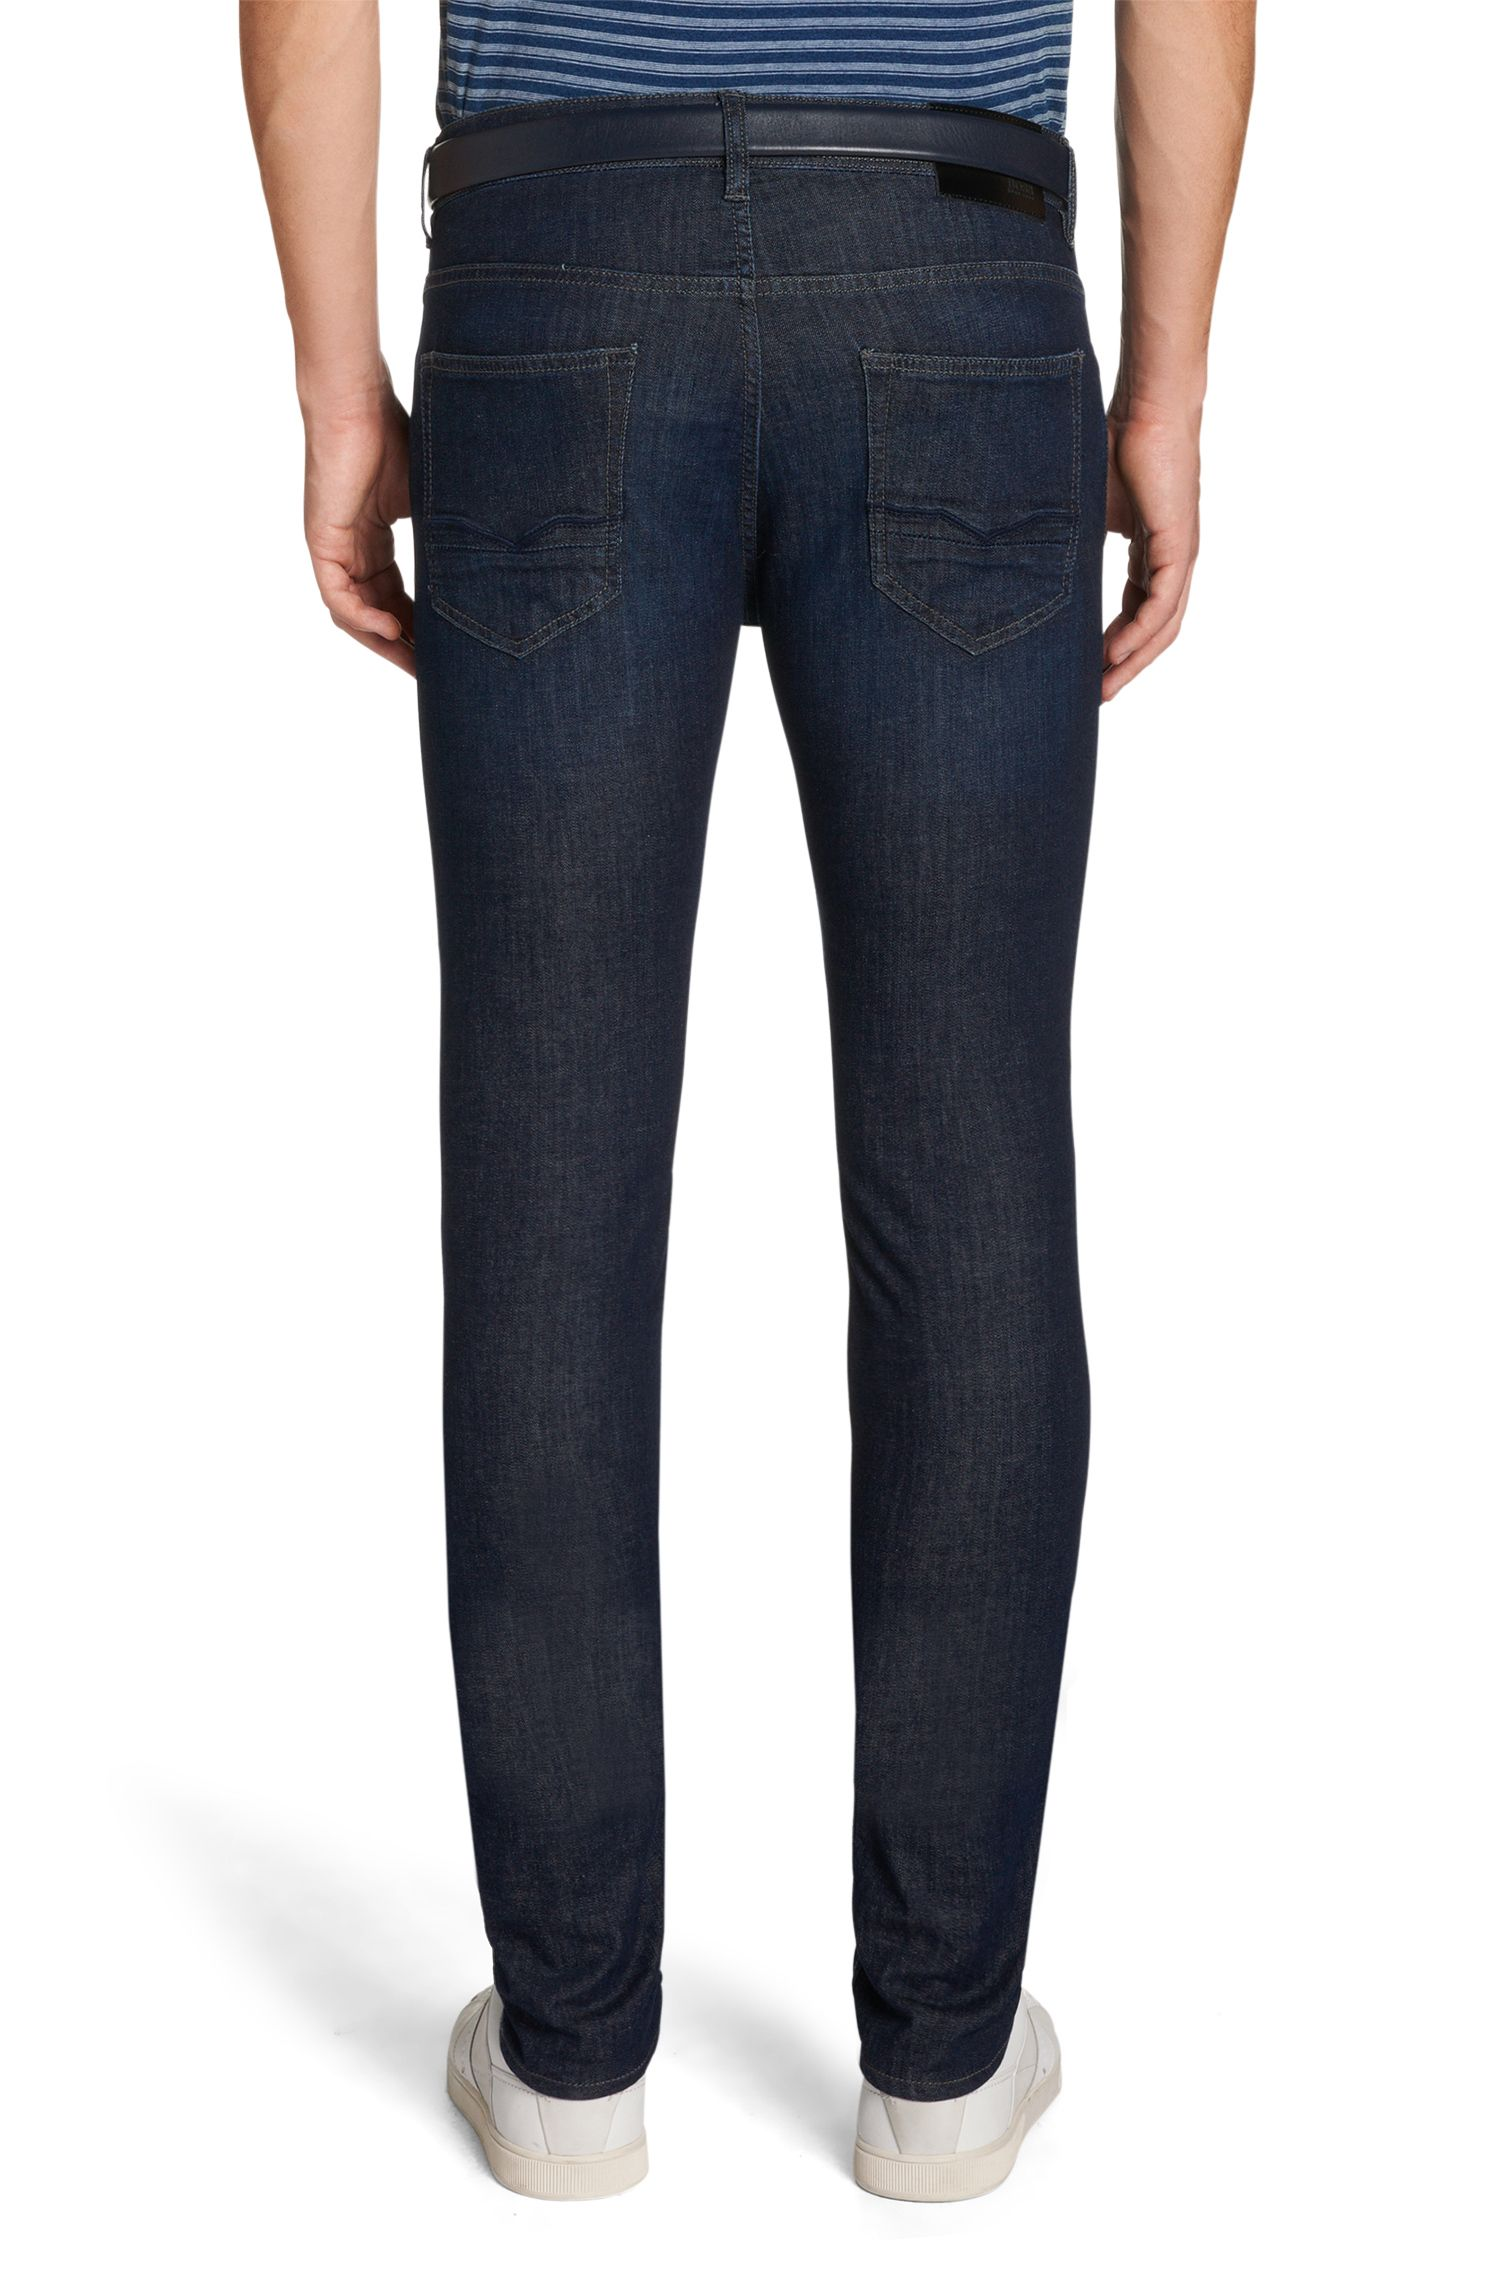 Jeans Extra Slim Fit en coton stretch : « Miami2 »